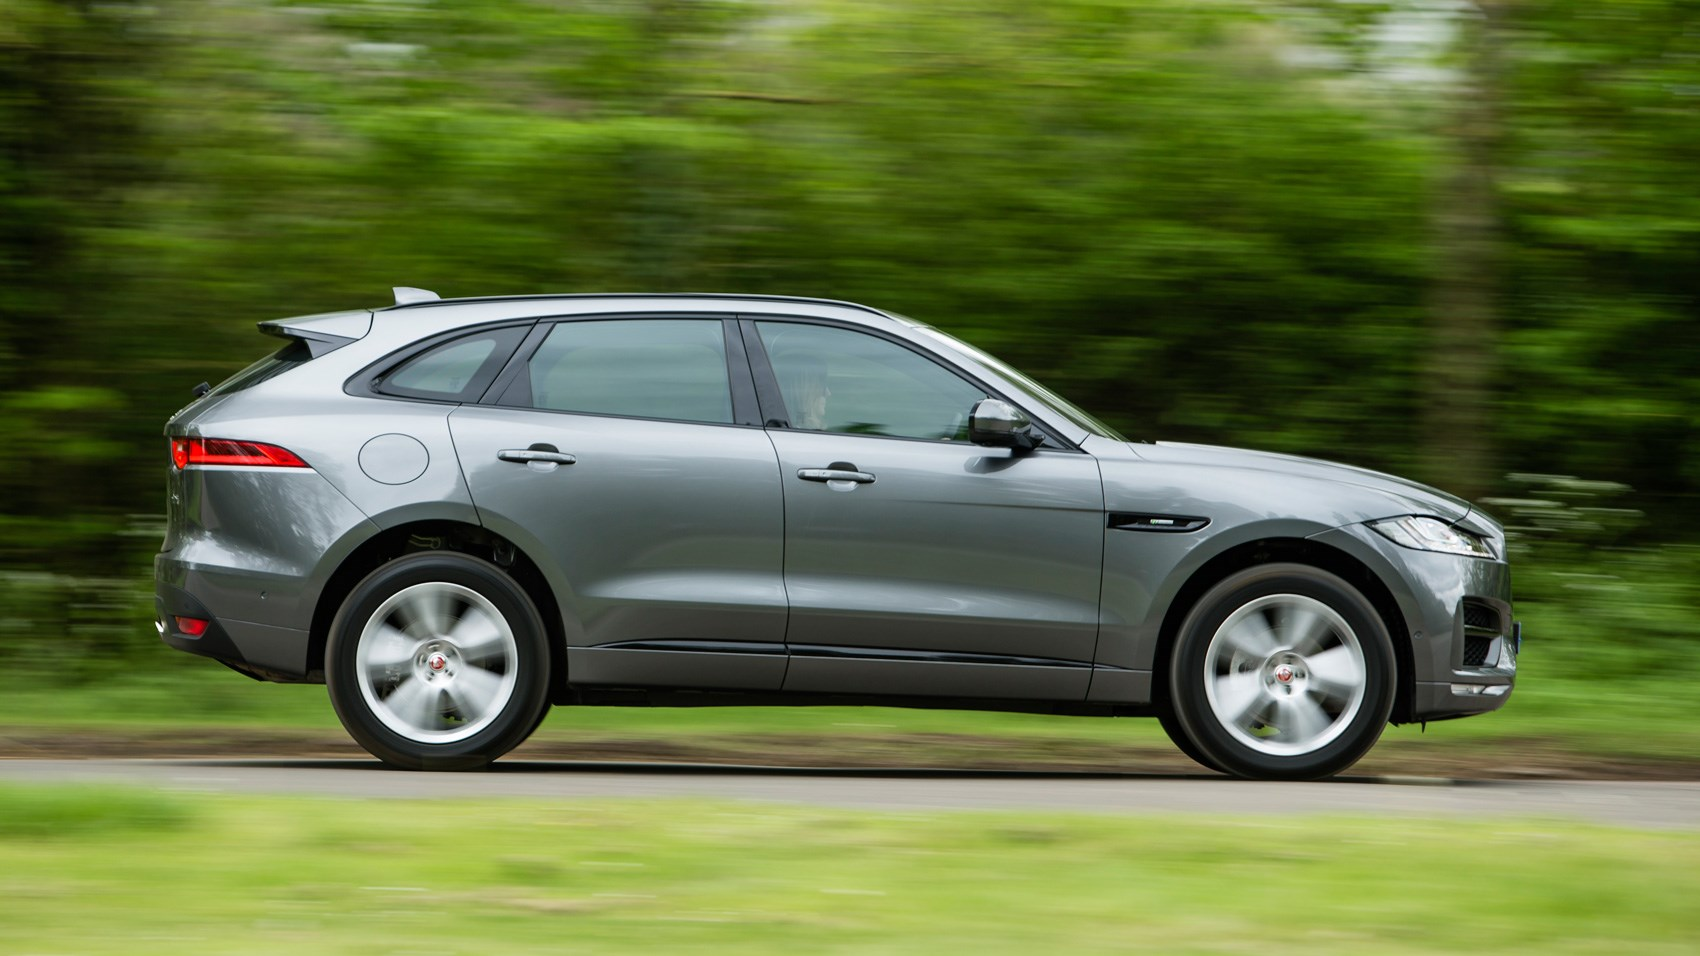 Jaguar F-Pace 25t R-Sport: priced from £44,460 in UK